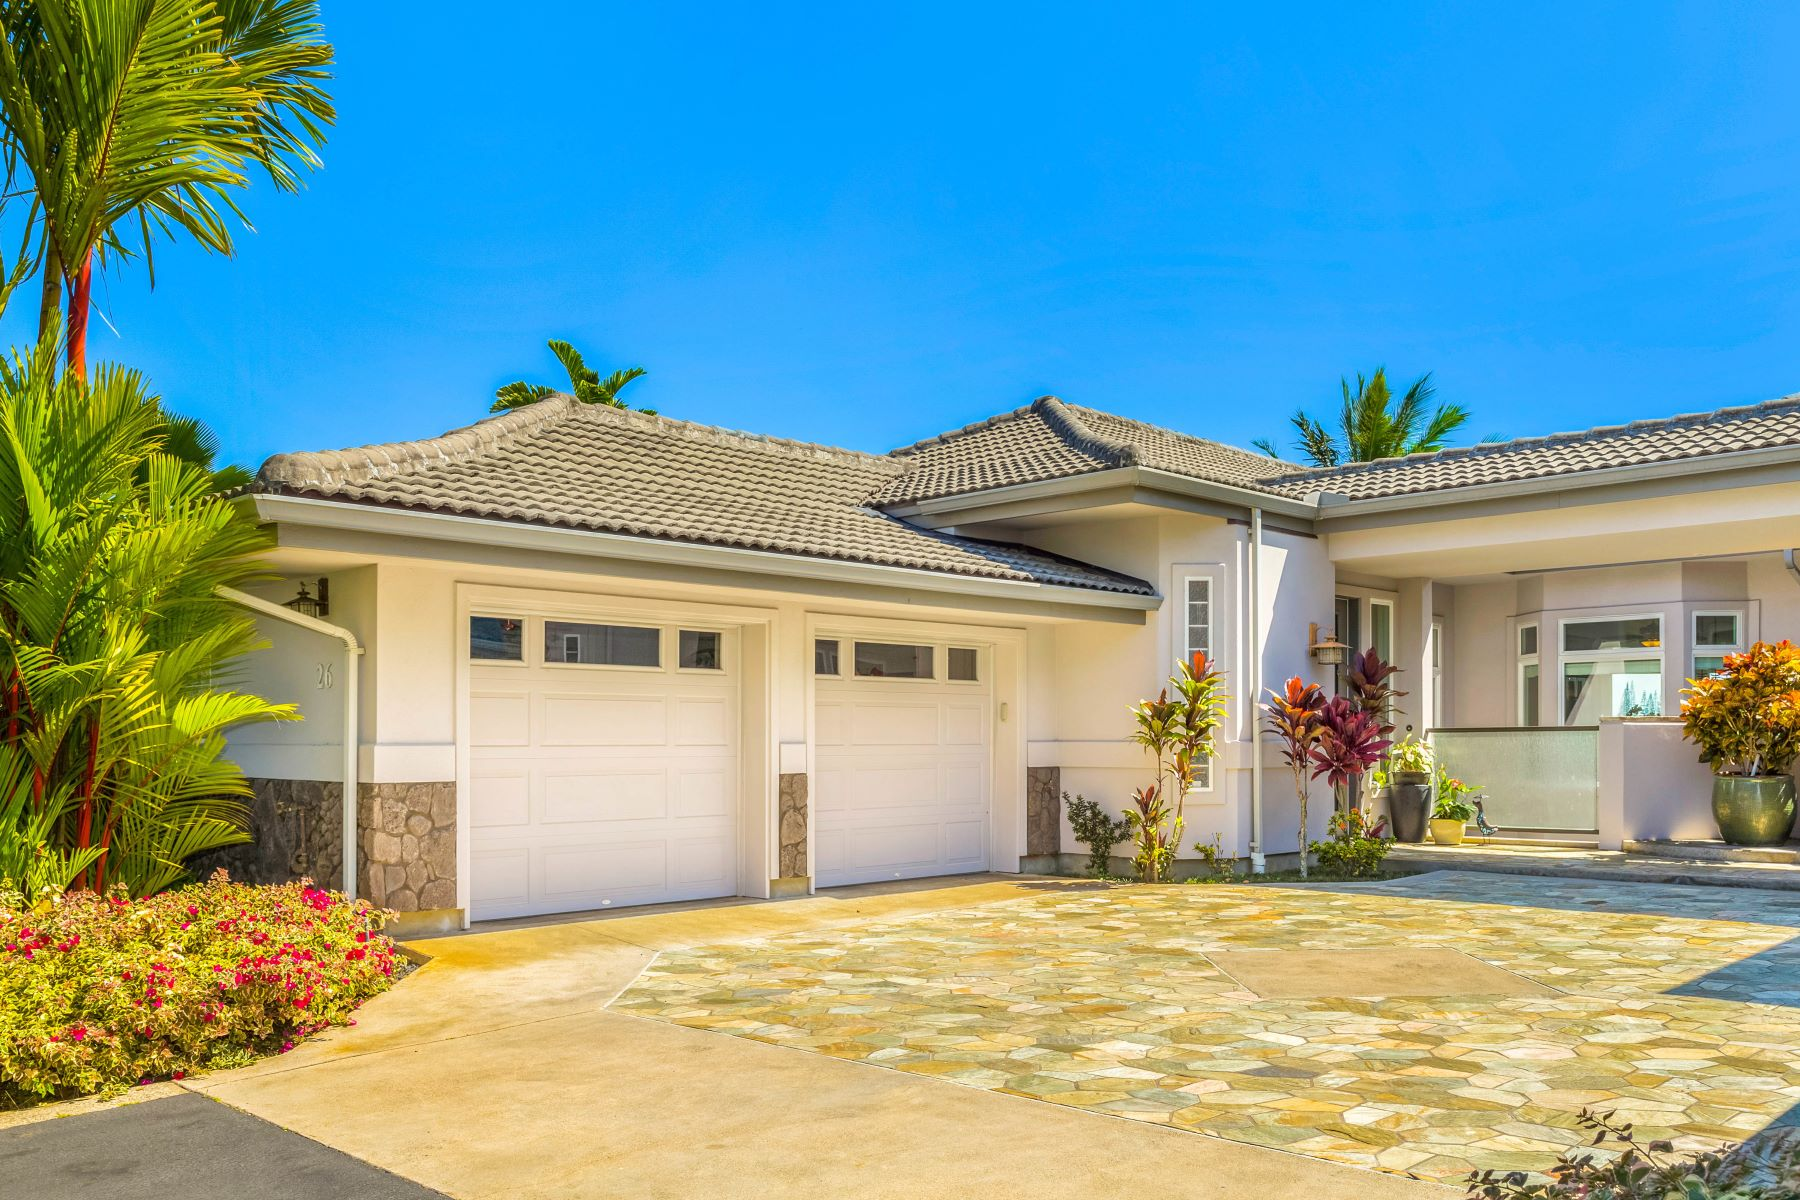 Townhouse for Sale at Kaiulani of Princeville 4100 Queen Emmas Dr. #26 Princeville, Hawaii 96722 United States